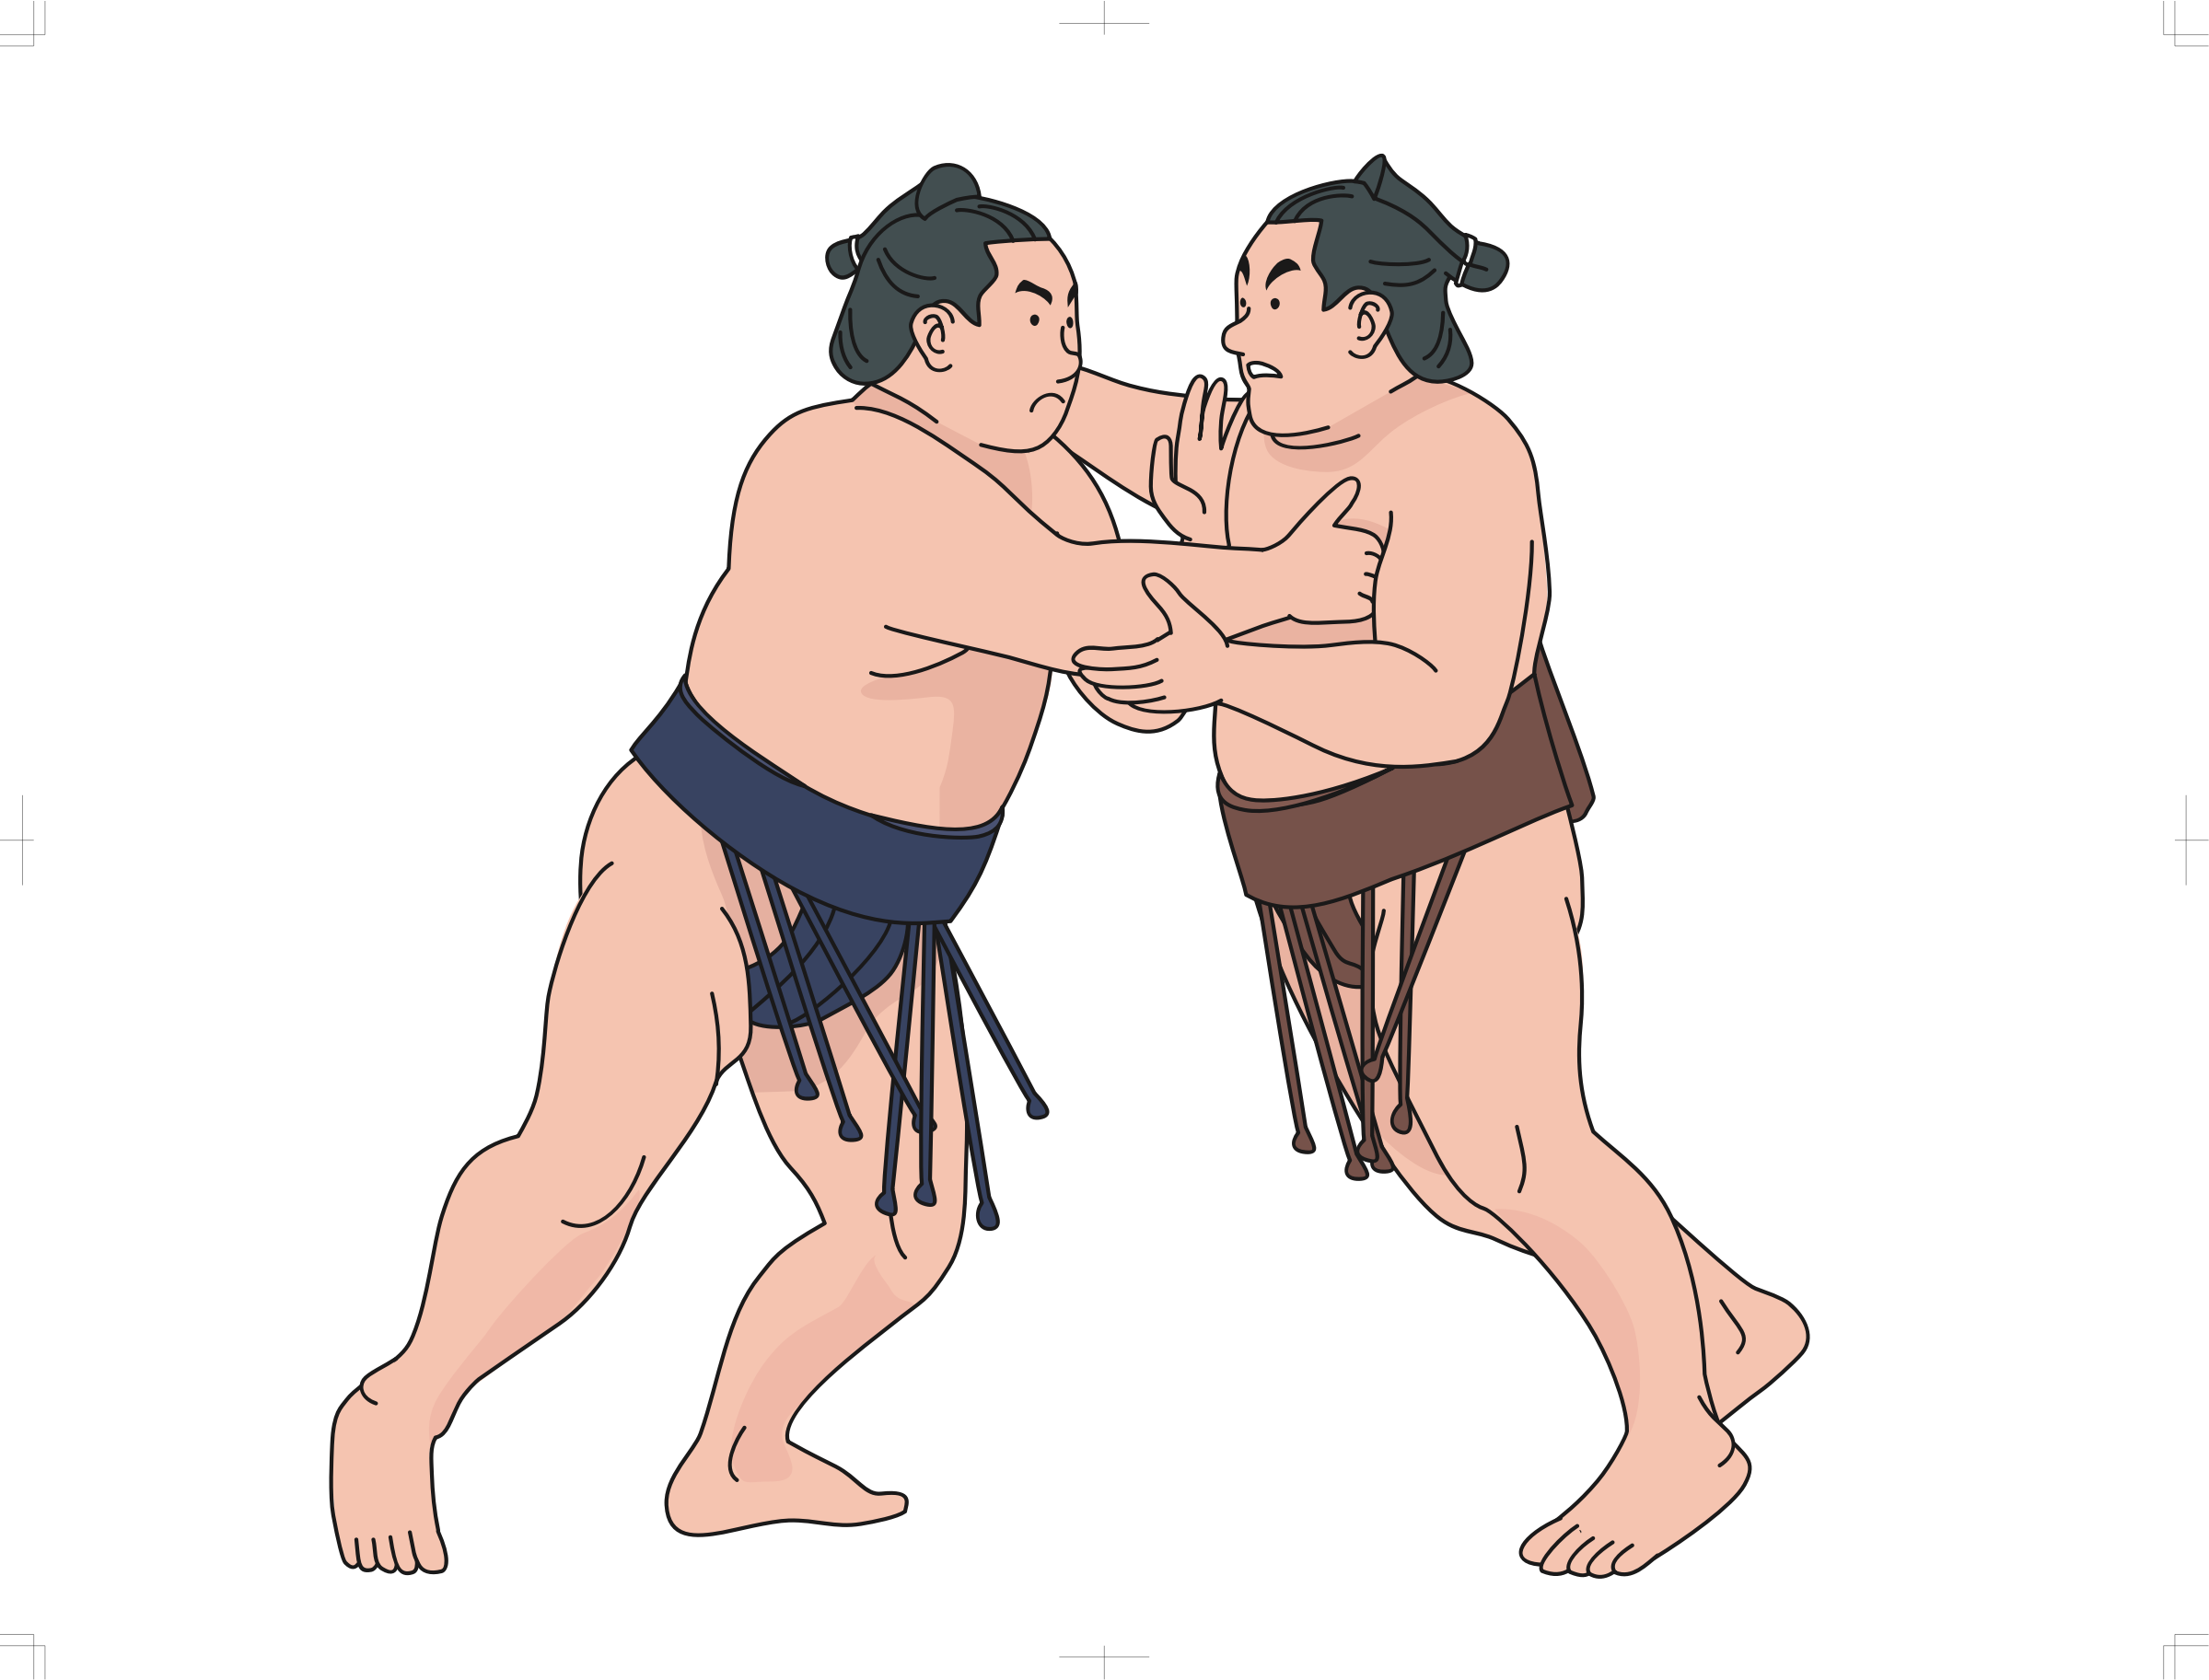 Sumo Wrestlers by oksmith